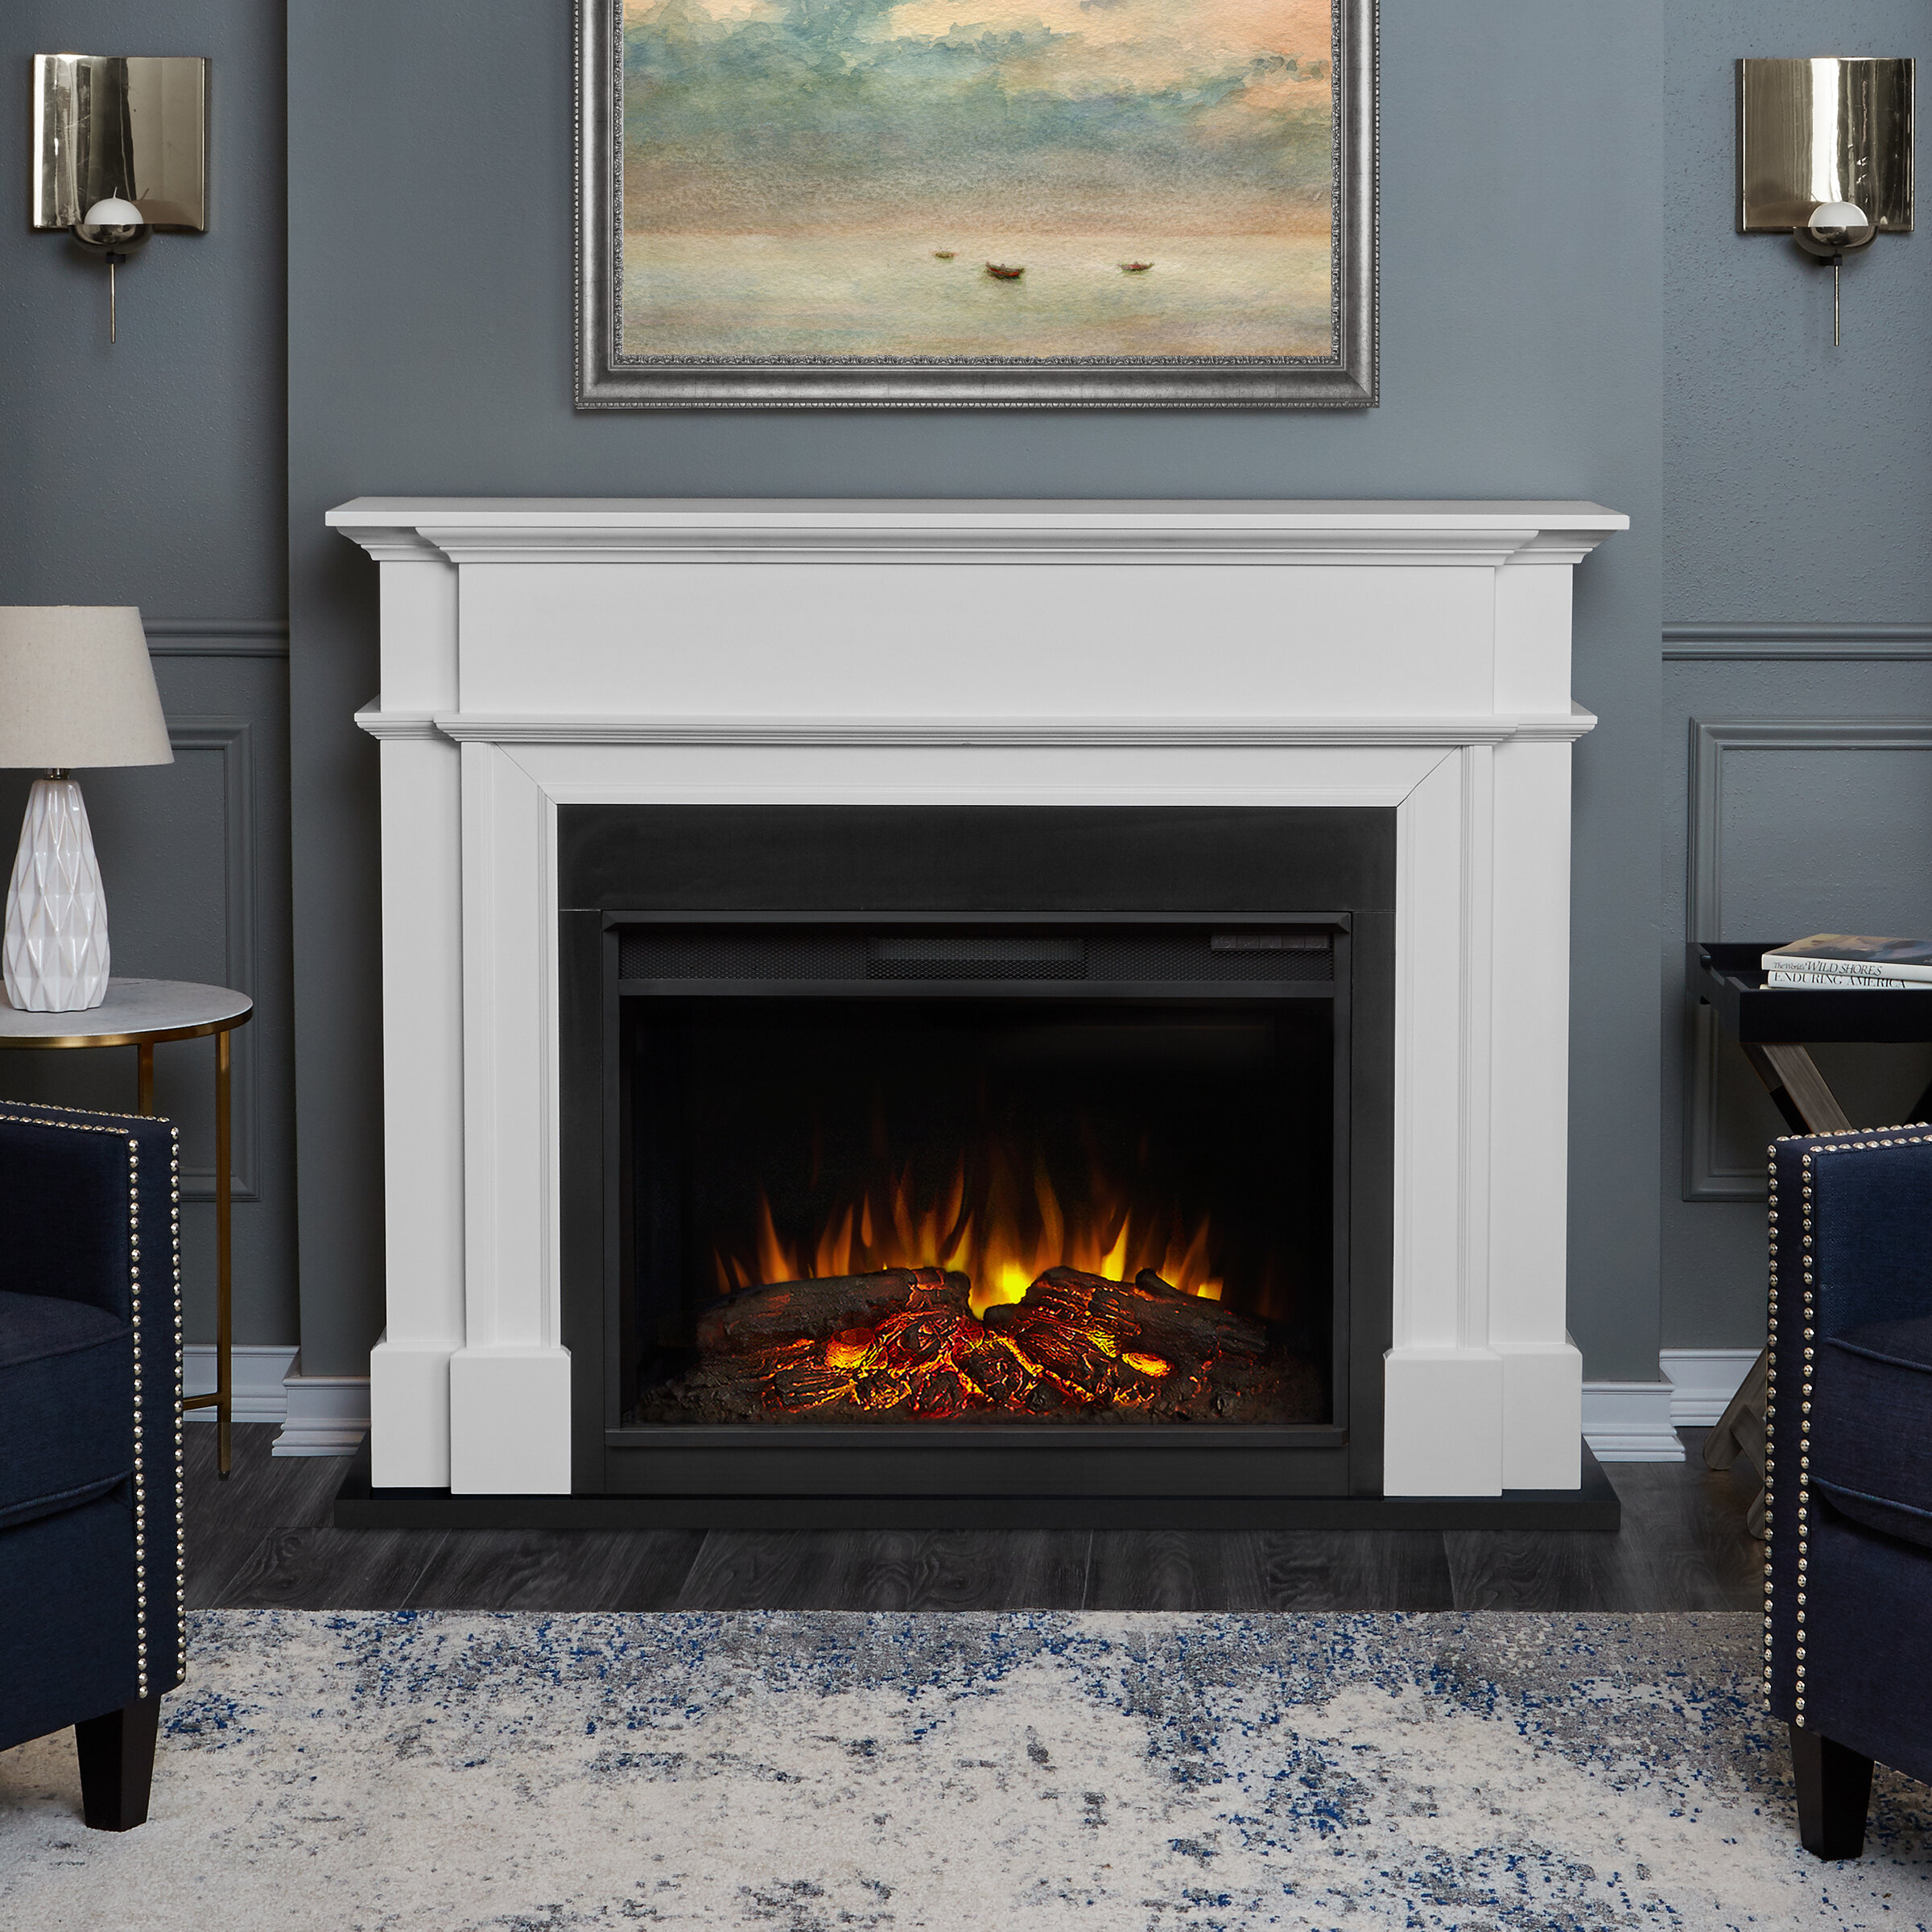 fireplace chestnut real large flame electric by grand free home callaway oak garden product shipping overstock today